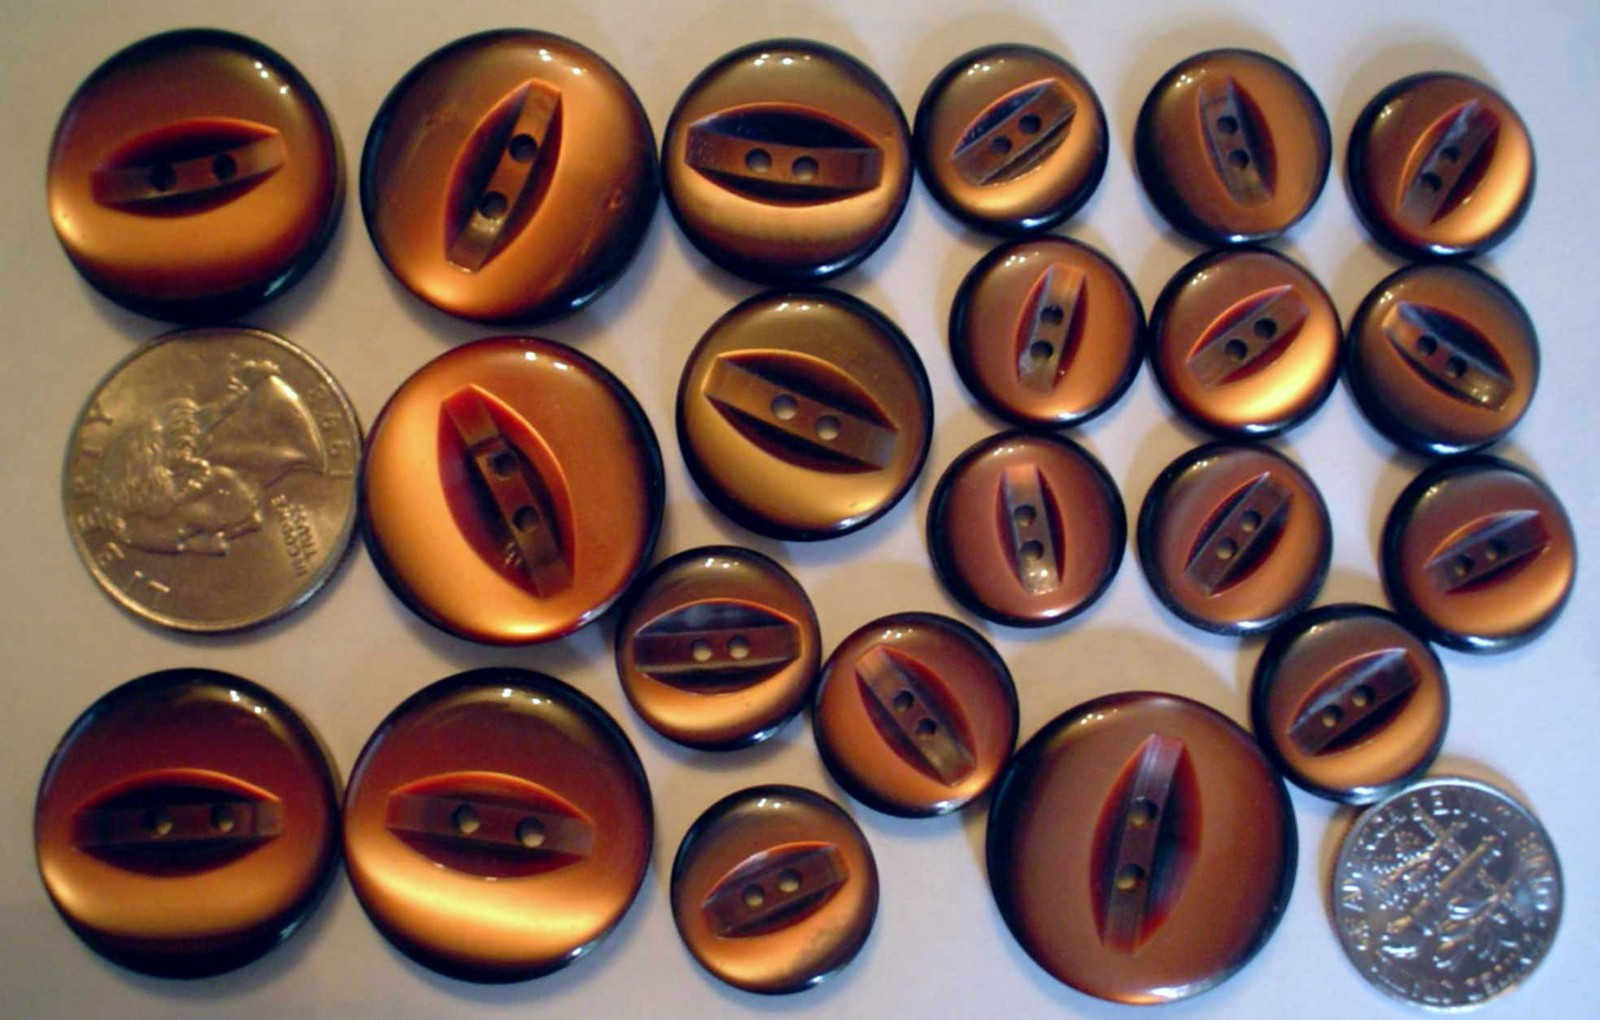 Auction 4852 21 unk buttons brown 2 hole modern 70s maybe